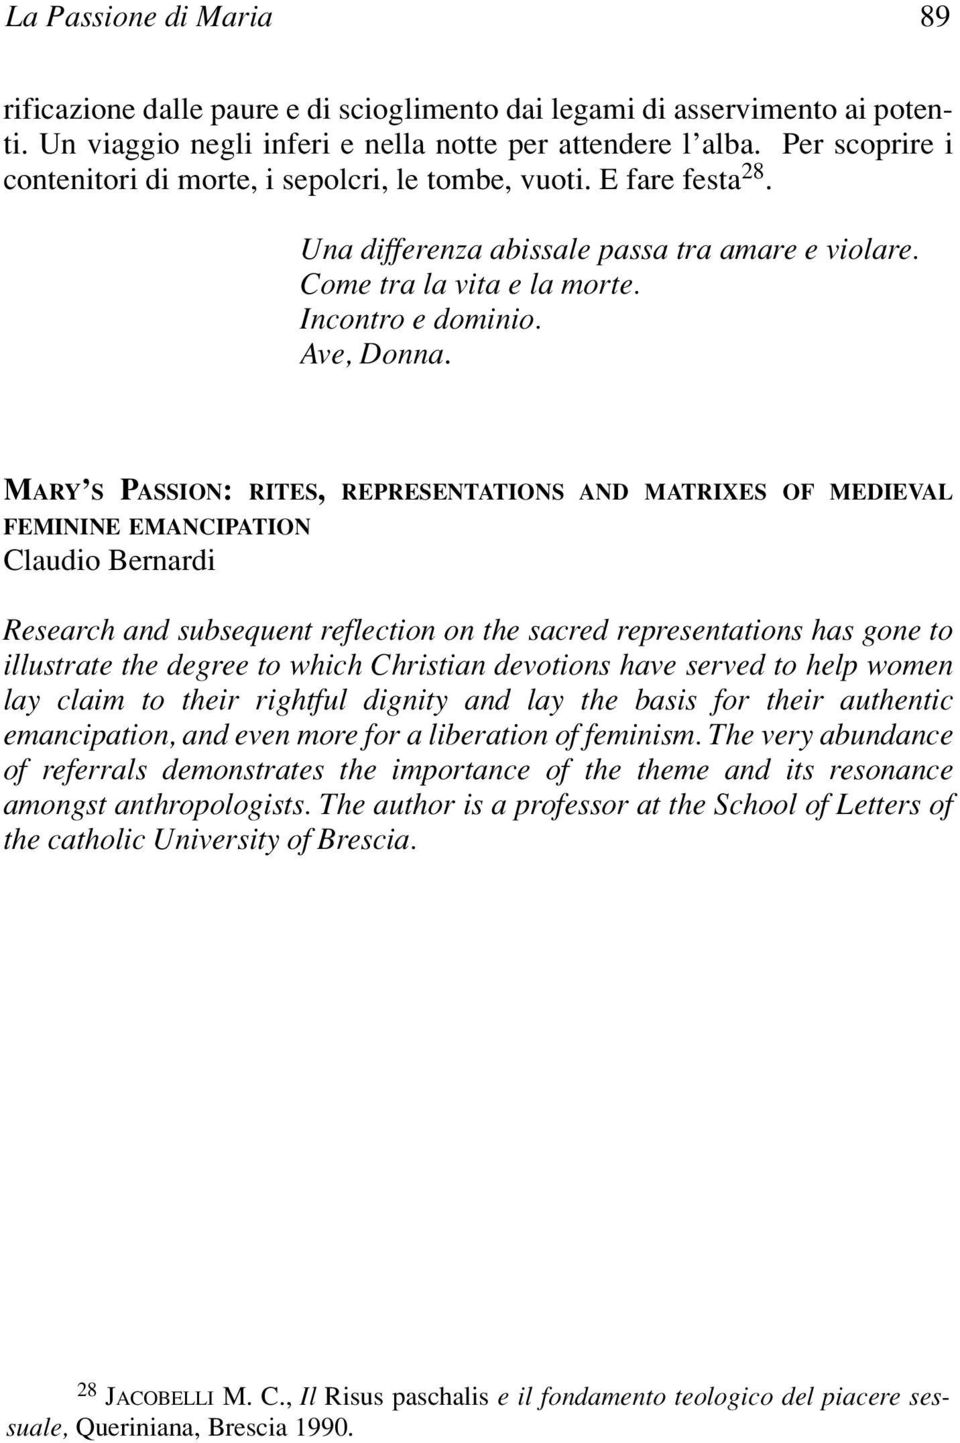 MARY S PASSION: RITES, REPRESENTATIONS AND MATRIXES OF MEDIEVAL FEMININE EMANCIPATION Claudio Bernardi Research and subsequent reflection on the sacred representations has gone to illustrate the